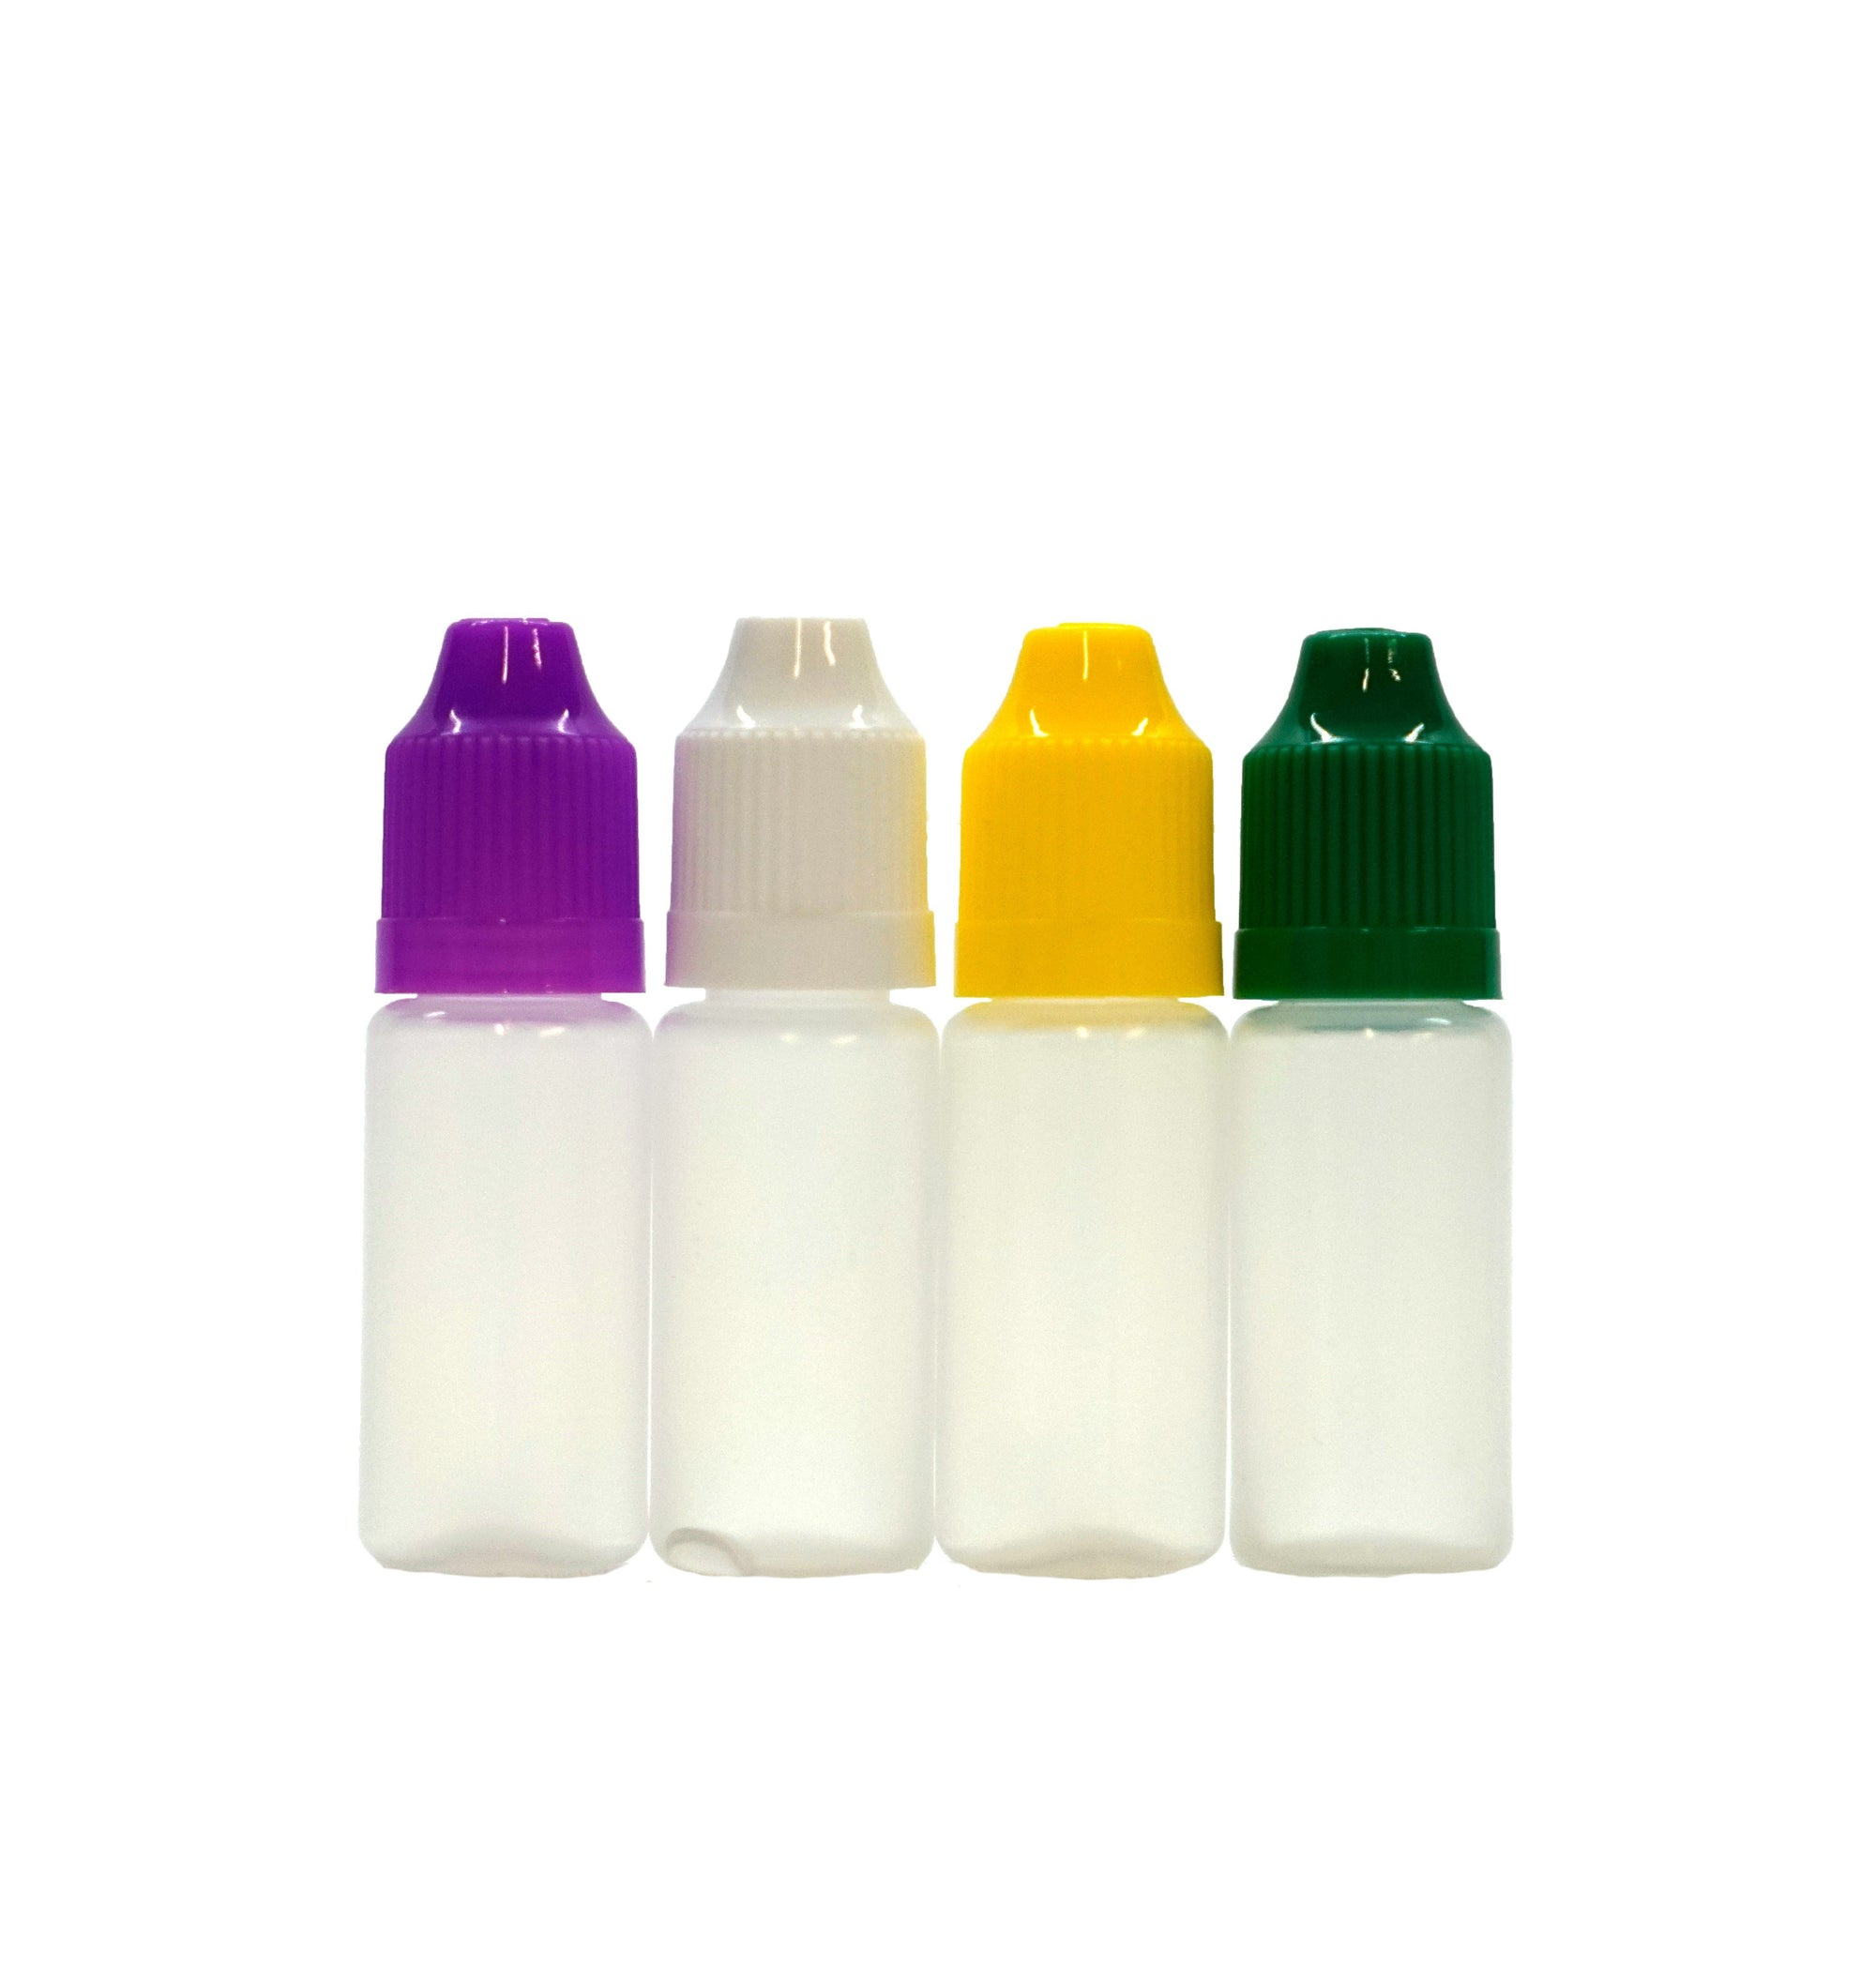 Dropper Bottle Set (4 Pack)